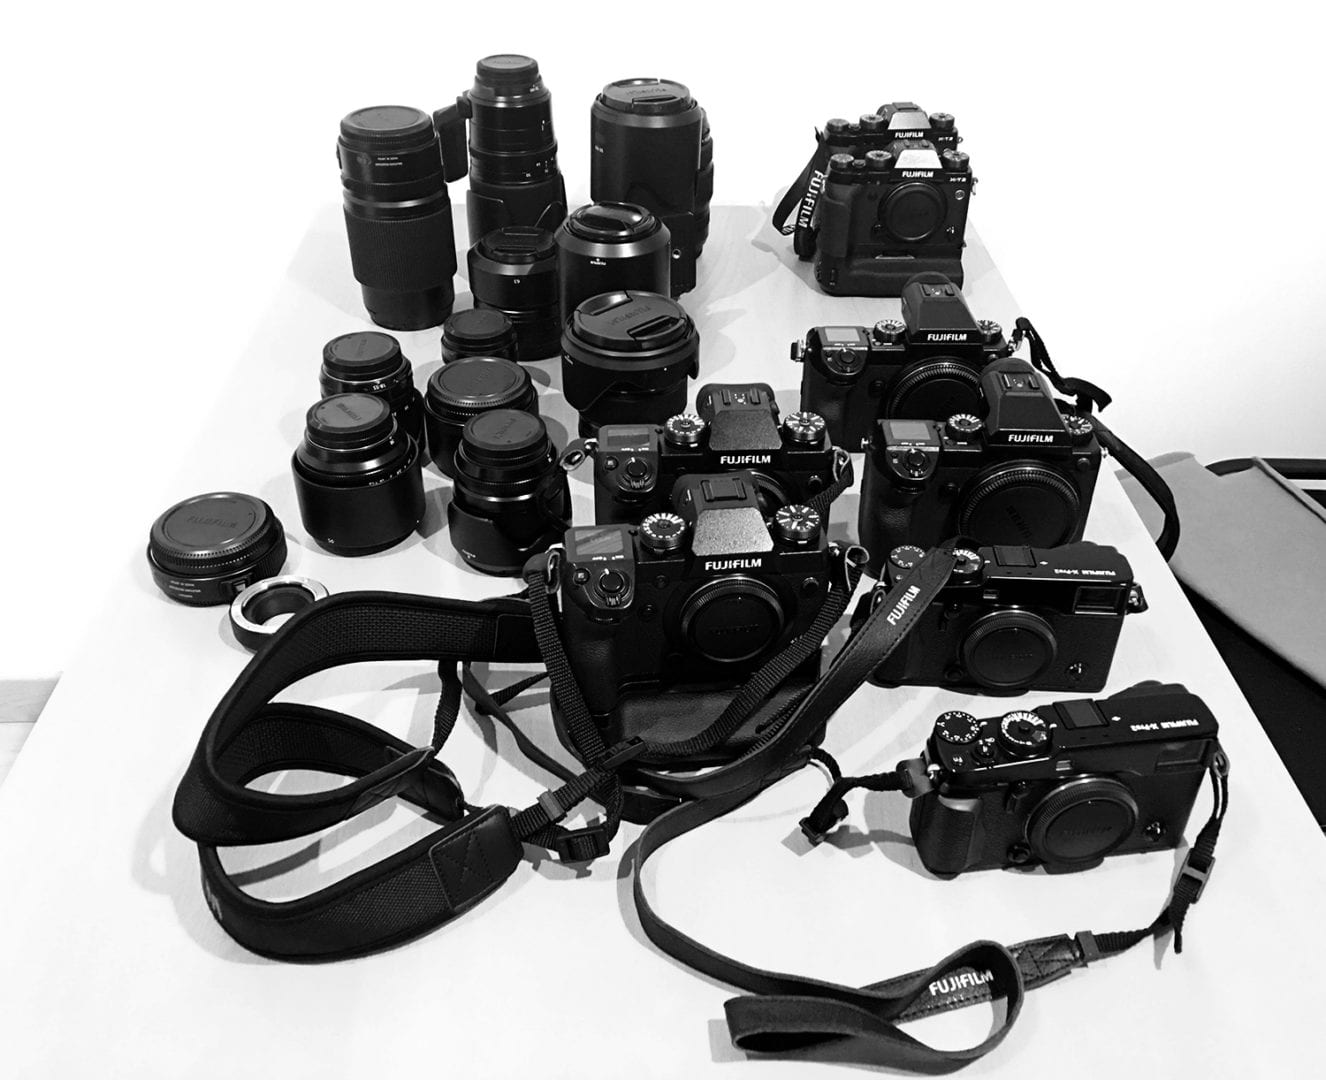 Big thanks to top FujiFilm France who loaned us some of their premium products like the Fujifilm GFX-50s, X-H1 and XT-2 and X-Pro 2 plus a beautiful collection of diverse glass pictured below.